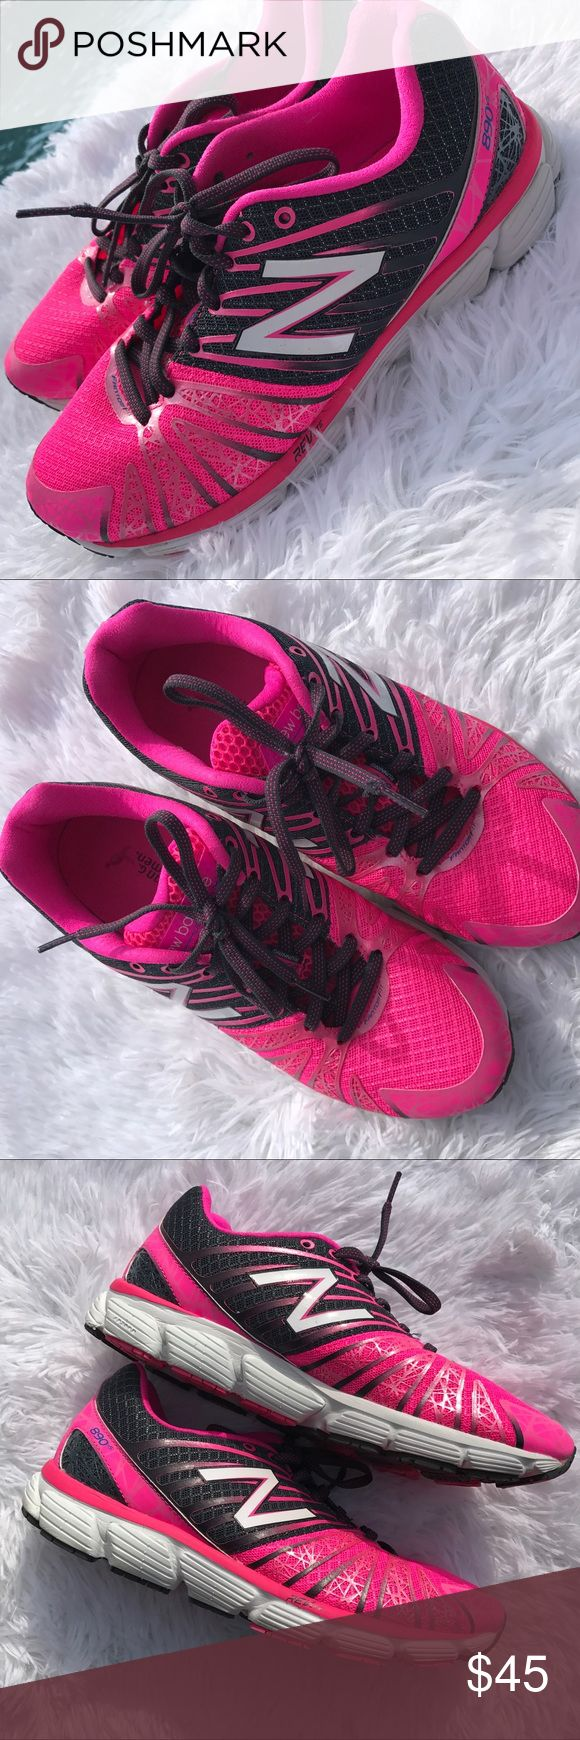 💕EUC💕 NEW BALANCE WIDE pink 890 Komen sneakers 💕EUC NEW BALANCE WIDE💕pink 890 Komen sneakers. Excellent condition. Only worn a few times.  So vibrant and great support!! New Balance Shoes Sneakers